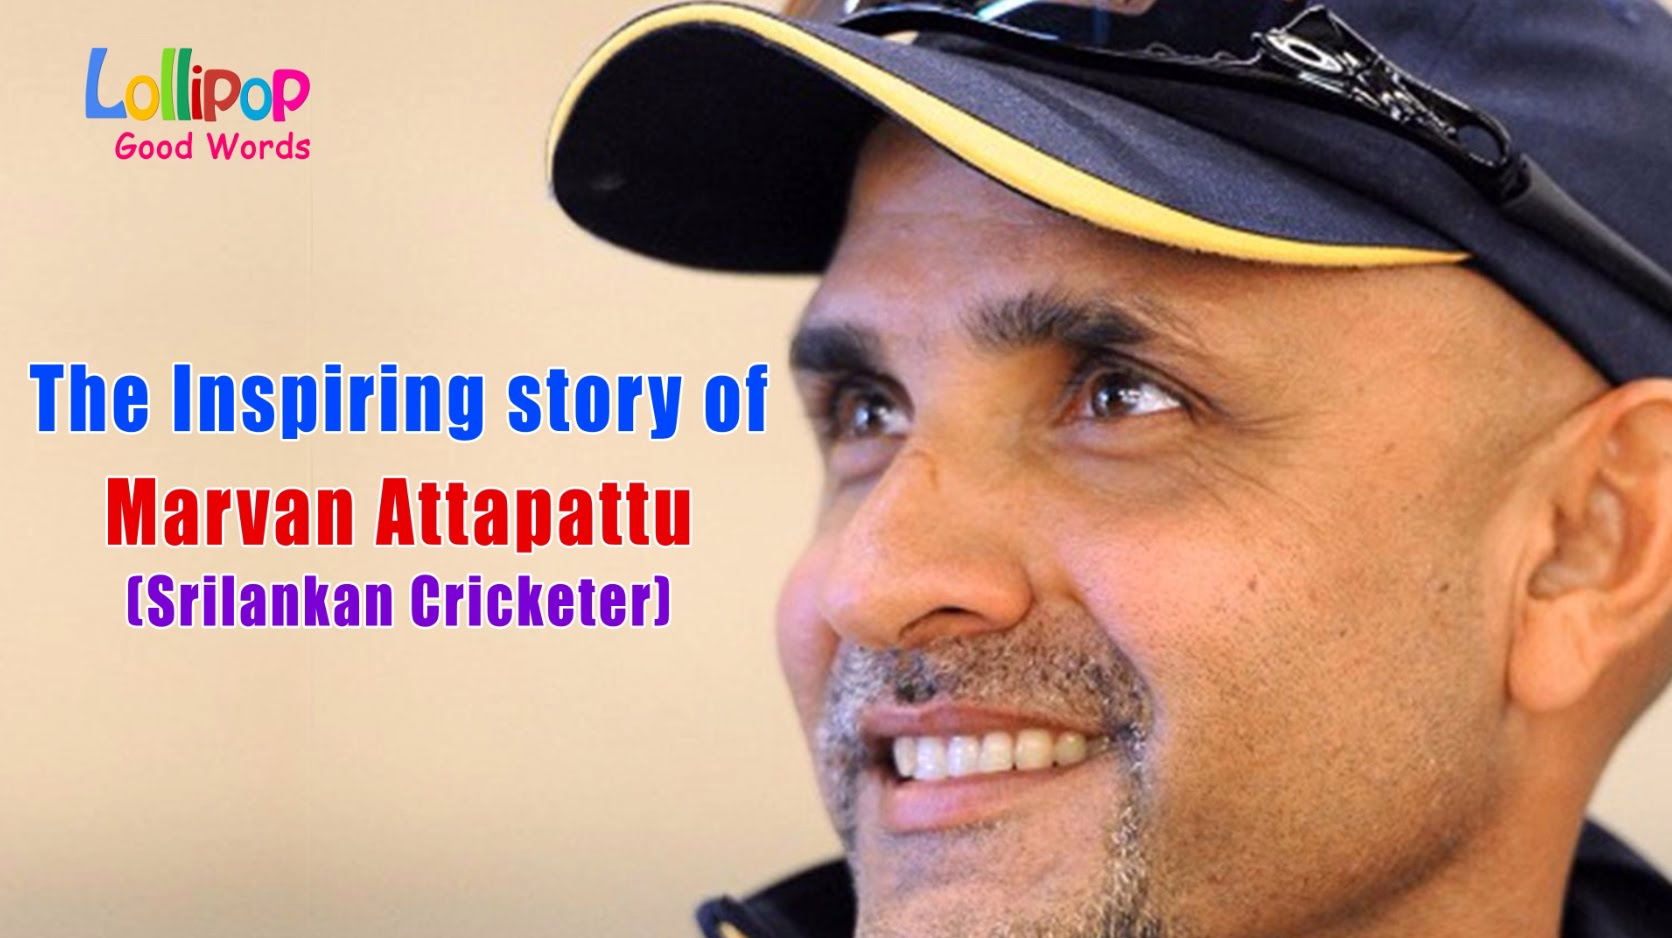 An amazing story of Marvan Attapattu, Srilankan Cricketer.